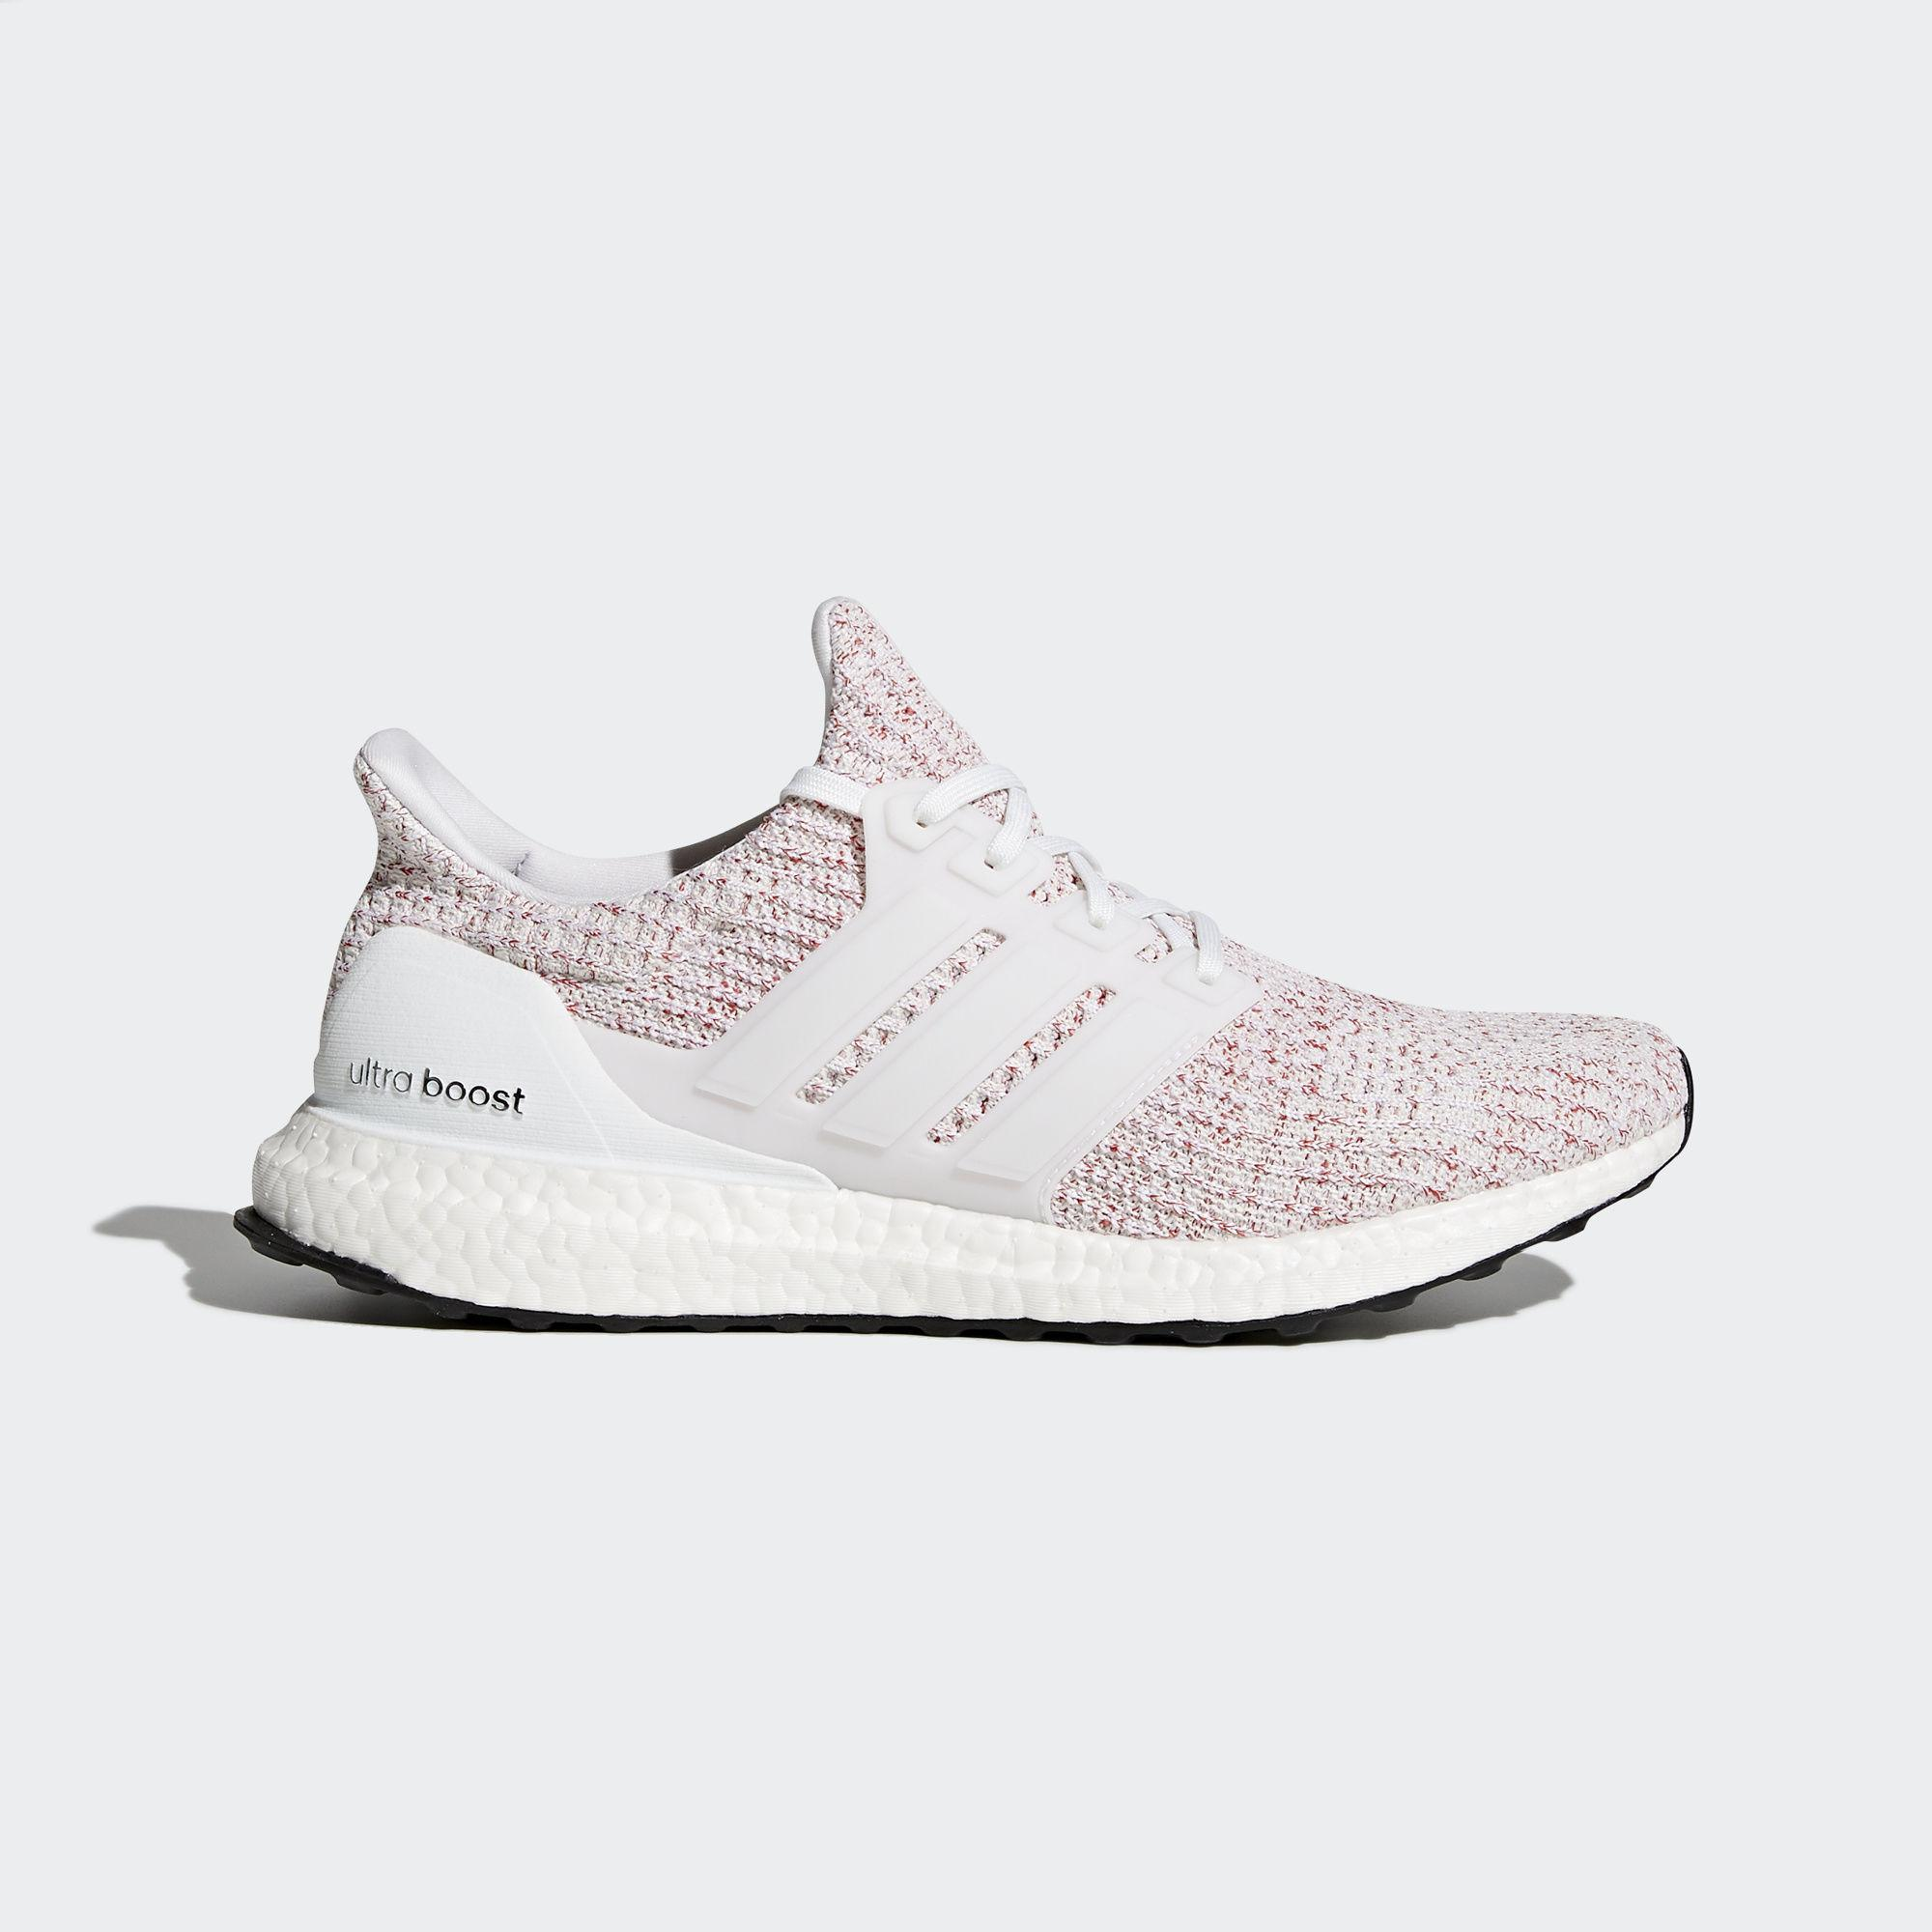 Adidas Mens Ultra Boost Running Shoes WhiteScarlet